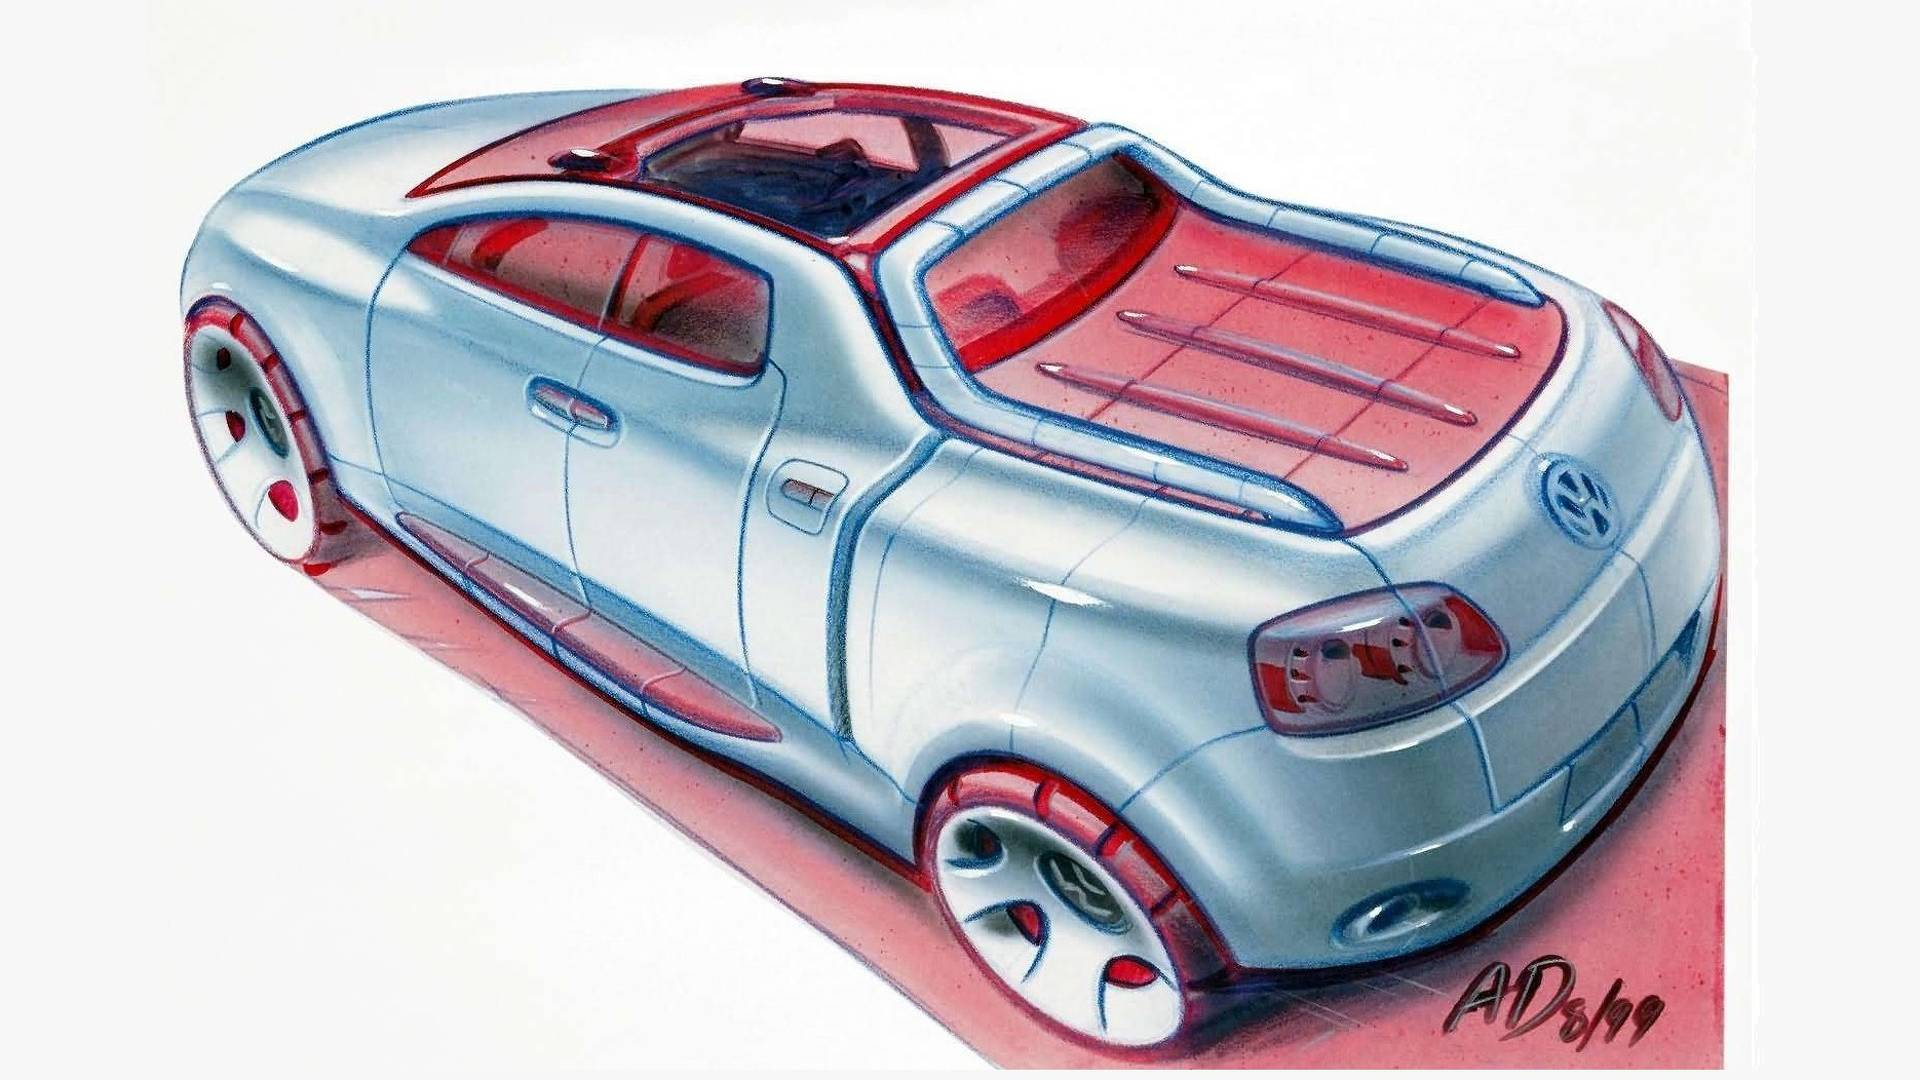 2000-vw-advanced-activity-concept (23)